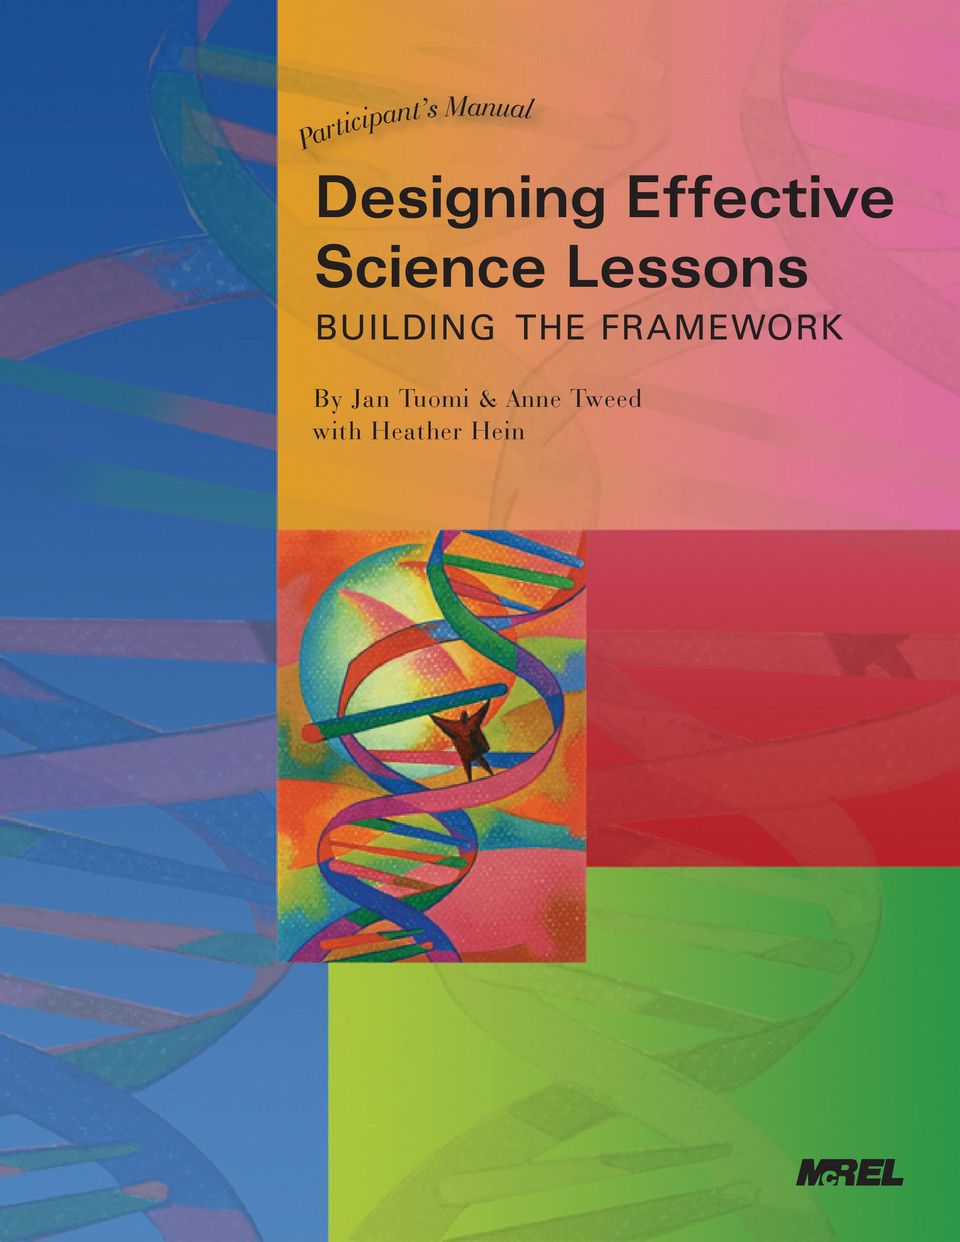 THE FRAMEWORK By Jan